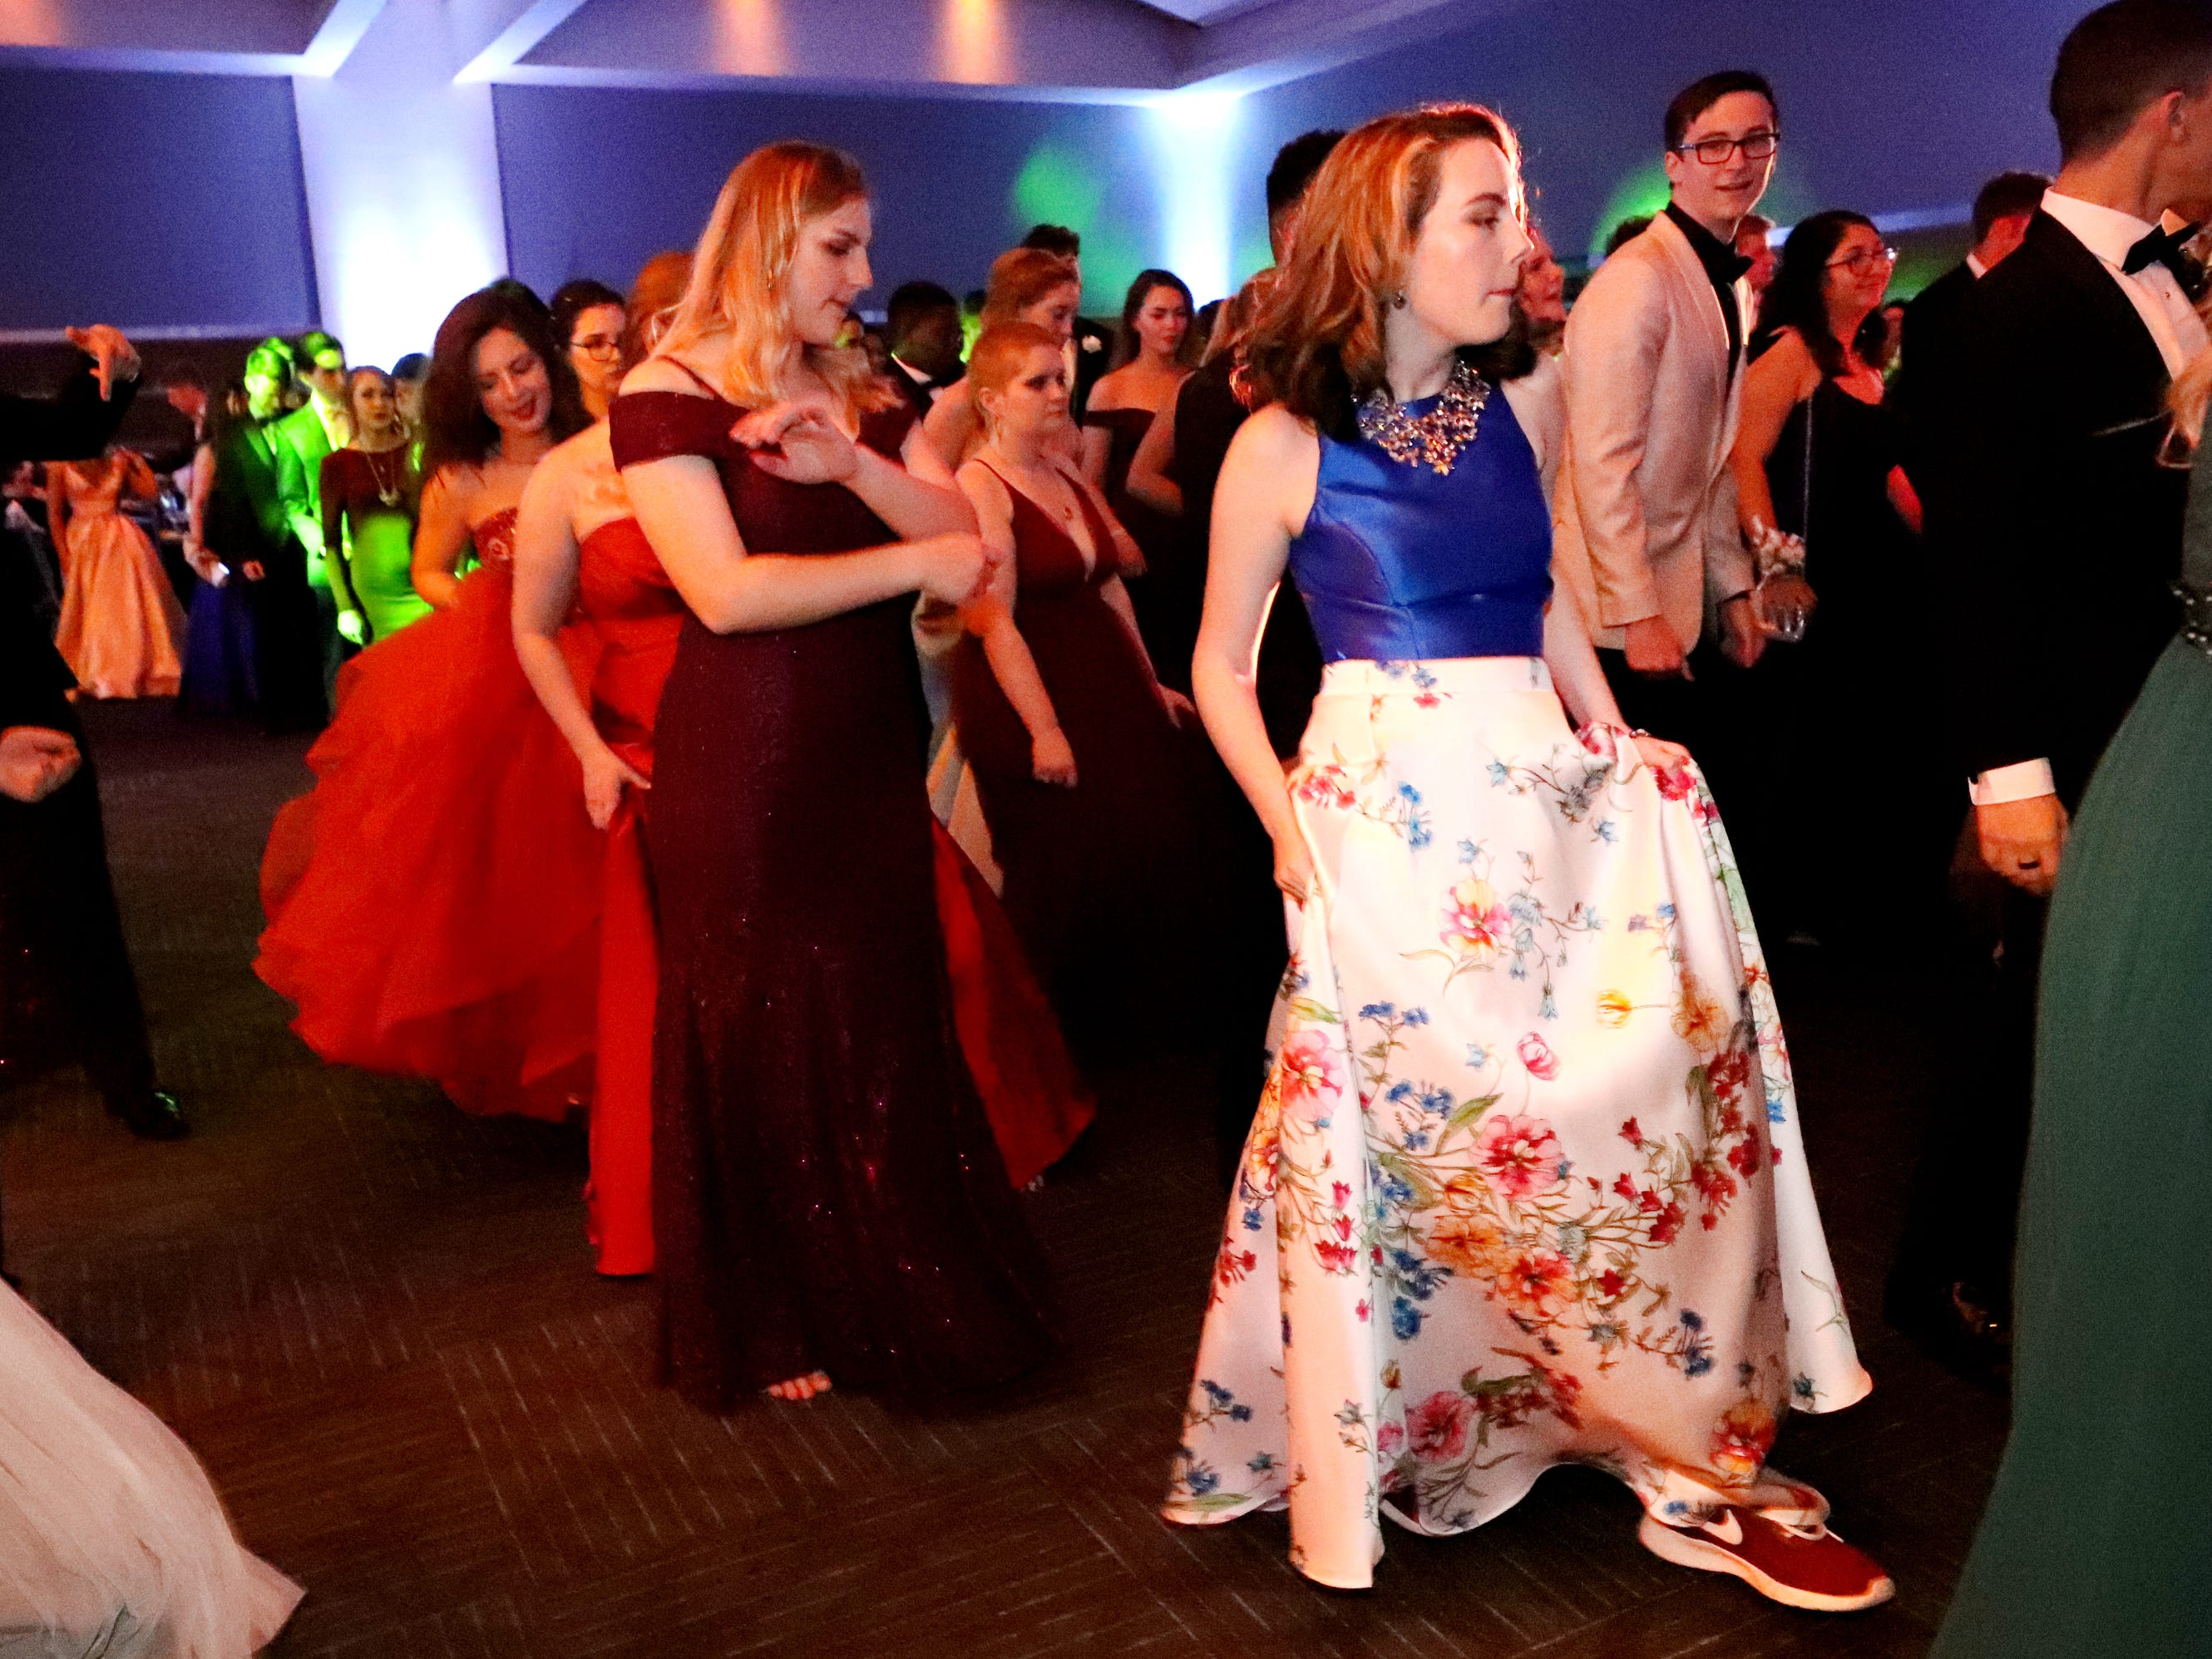 Floral dresses and athletic shoes were a popular combination at Blackman's prom on Friday April 12, 2019, at MTSU.